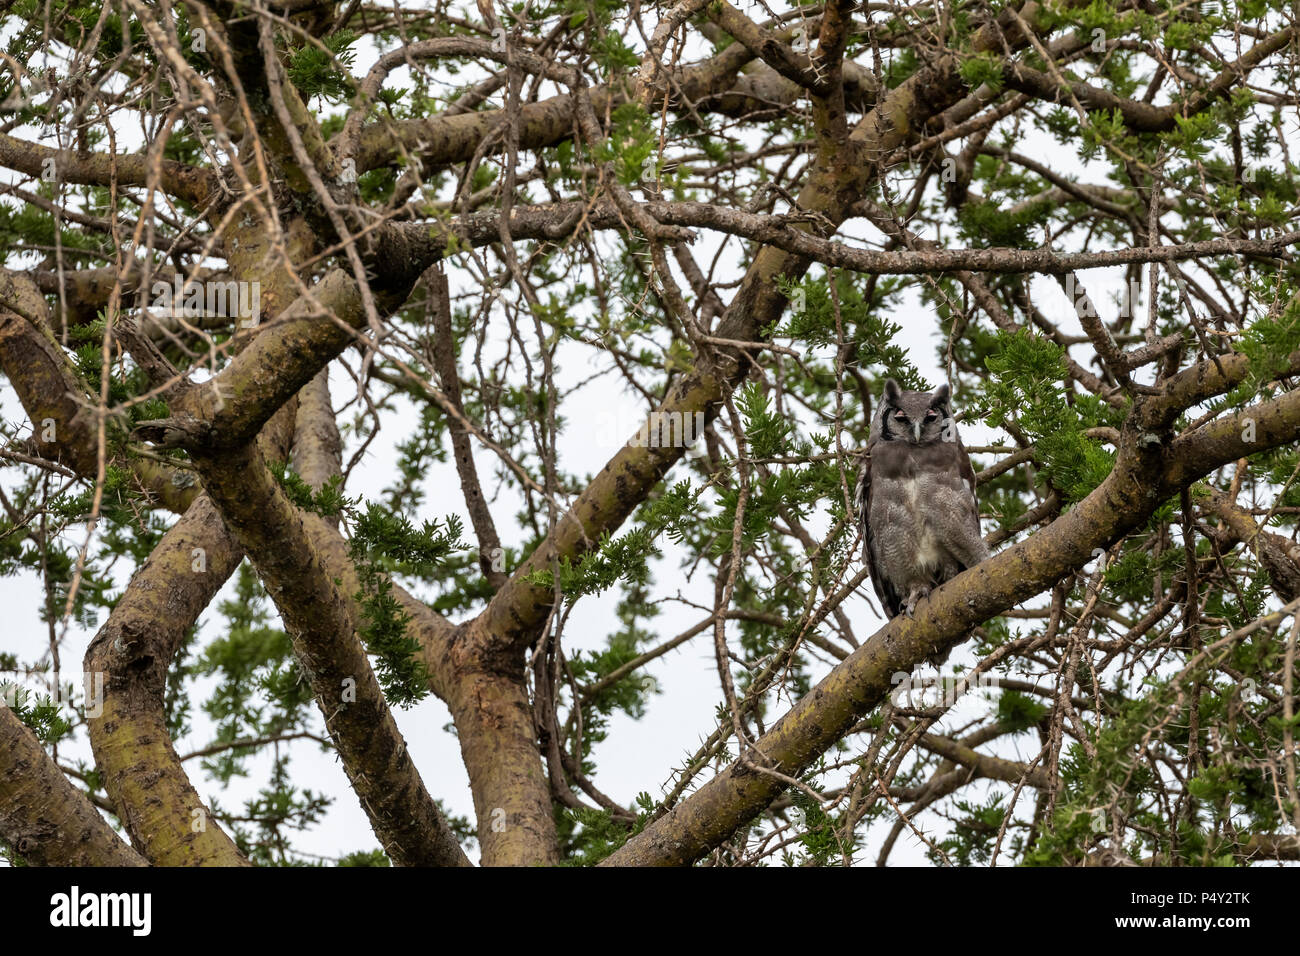 Verreaux's Eagle-Owl (Bubo lacteus) perched in a tree in Serengeti National Park, Tanzania - Stock Image